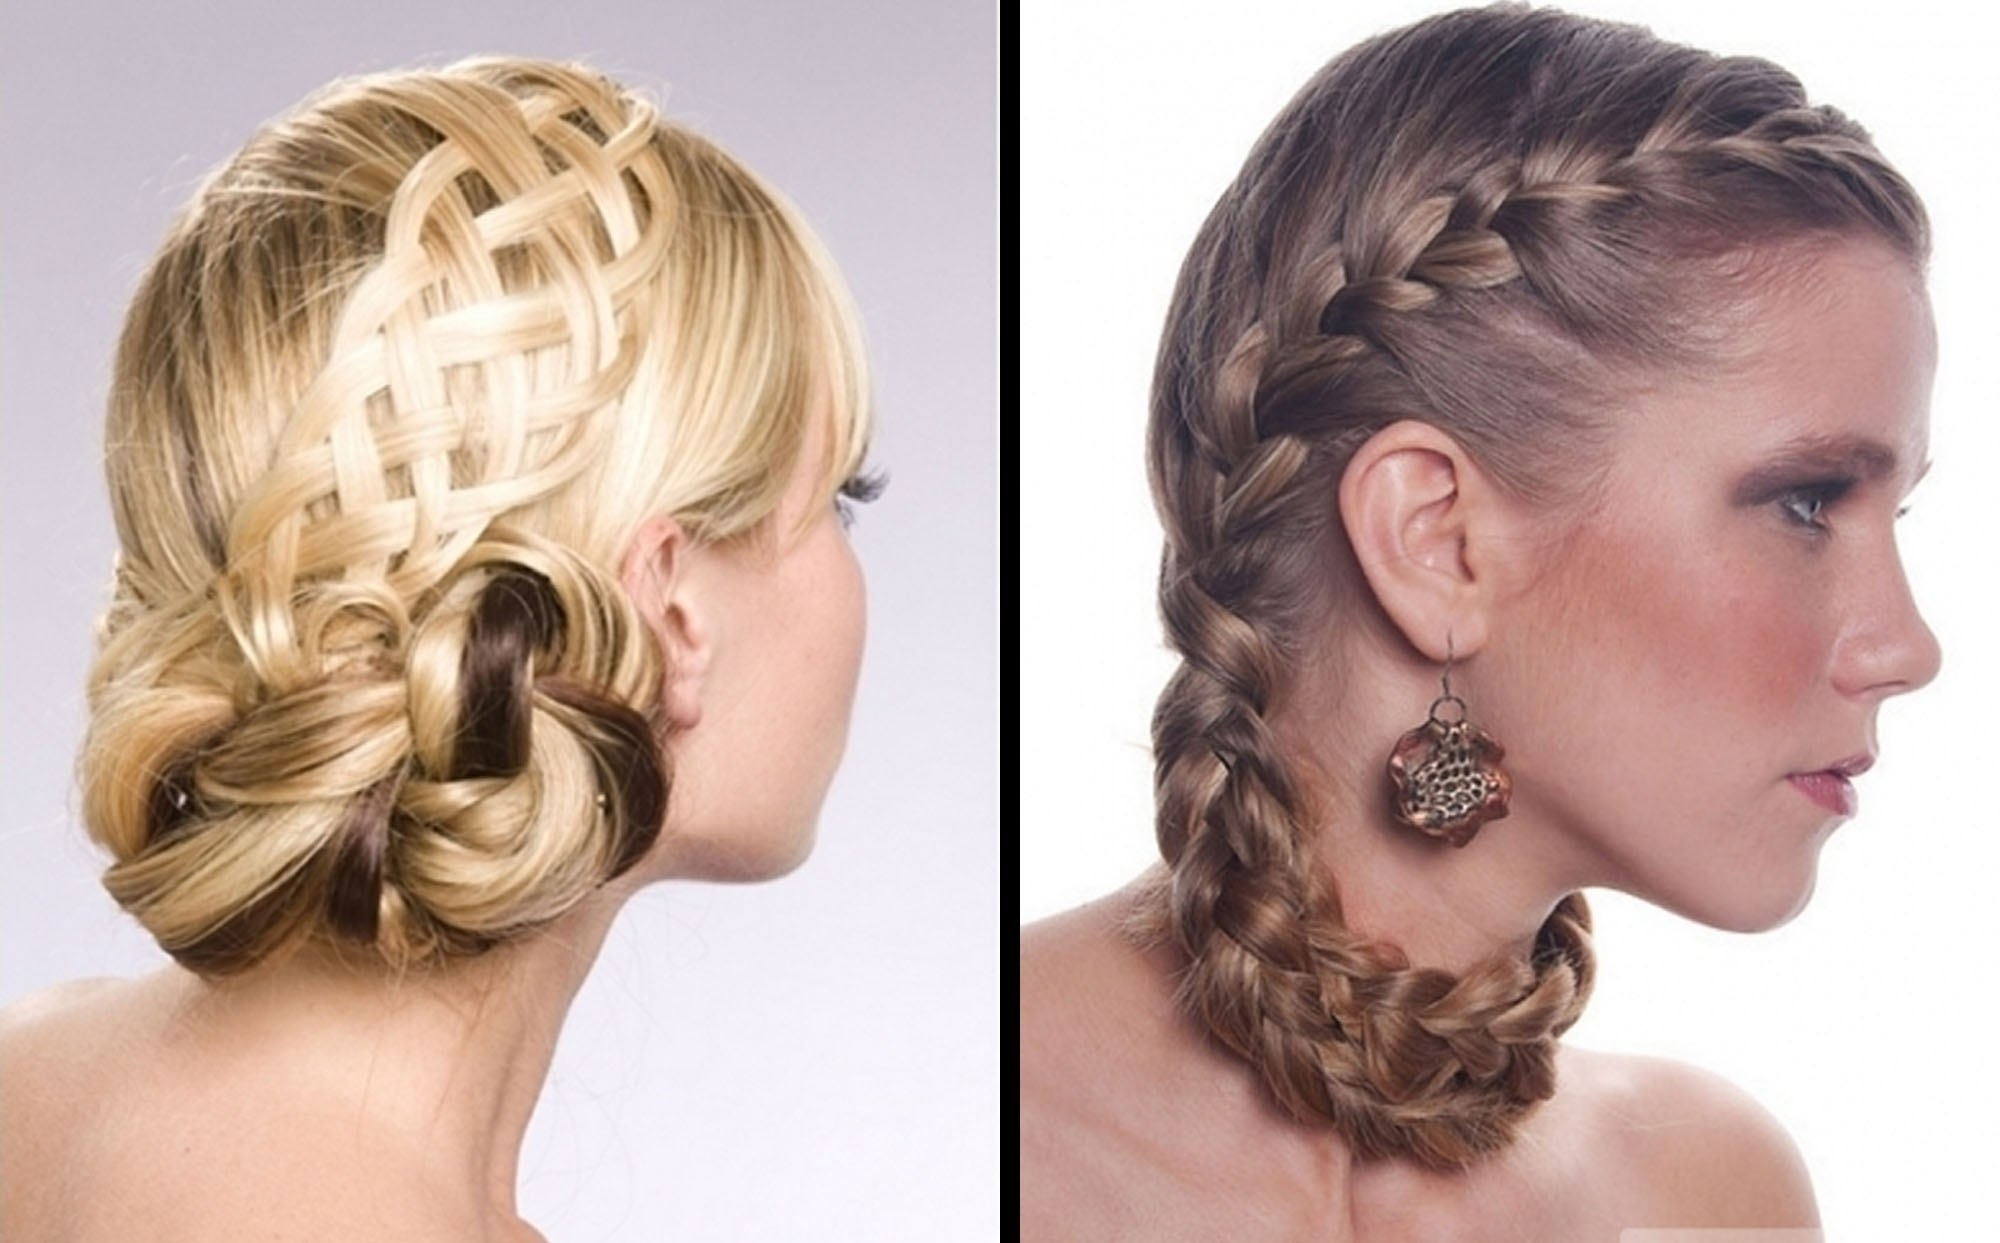 Hairstyles Prom For Short Hair Easy | Medium Hair Styles Ideas – 35491 Intended For Prom Updo Hairstyles For Medium Hair (View 11 of 15)